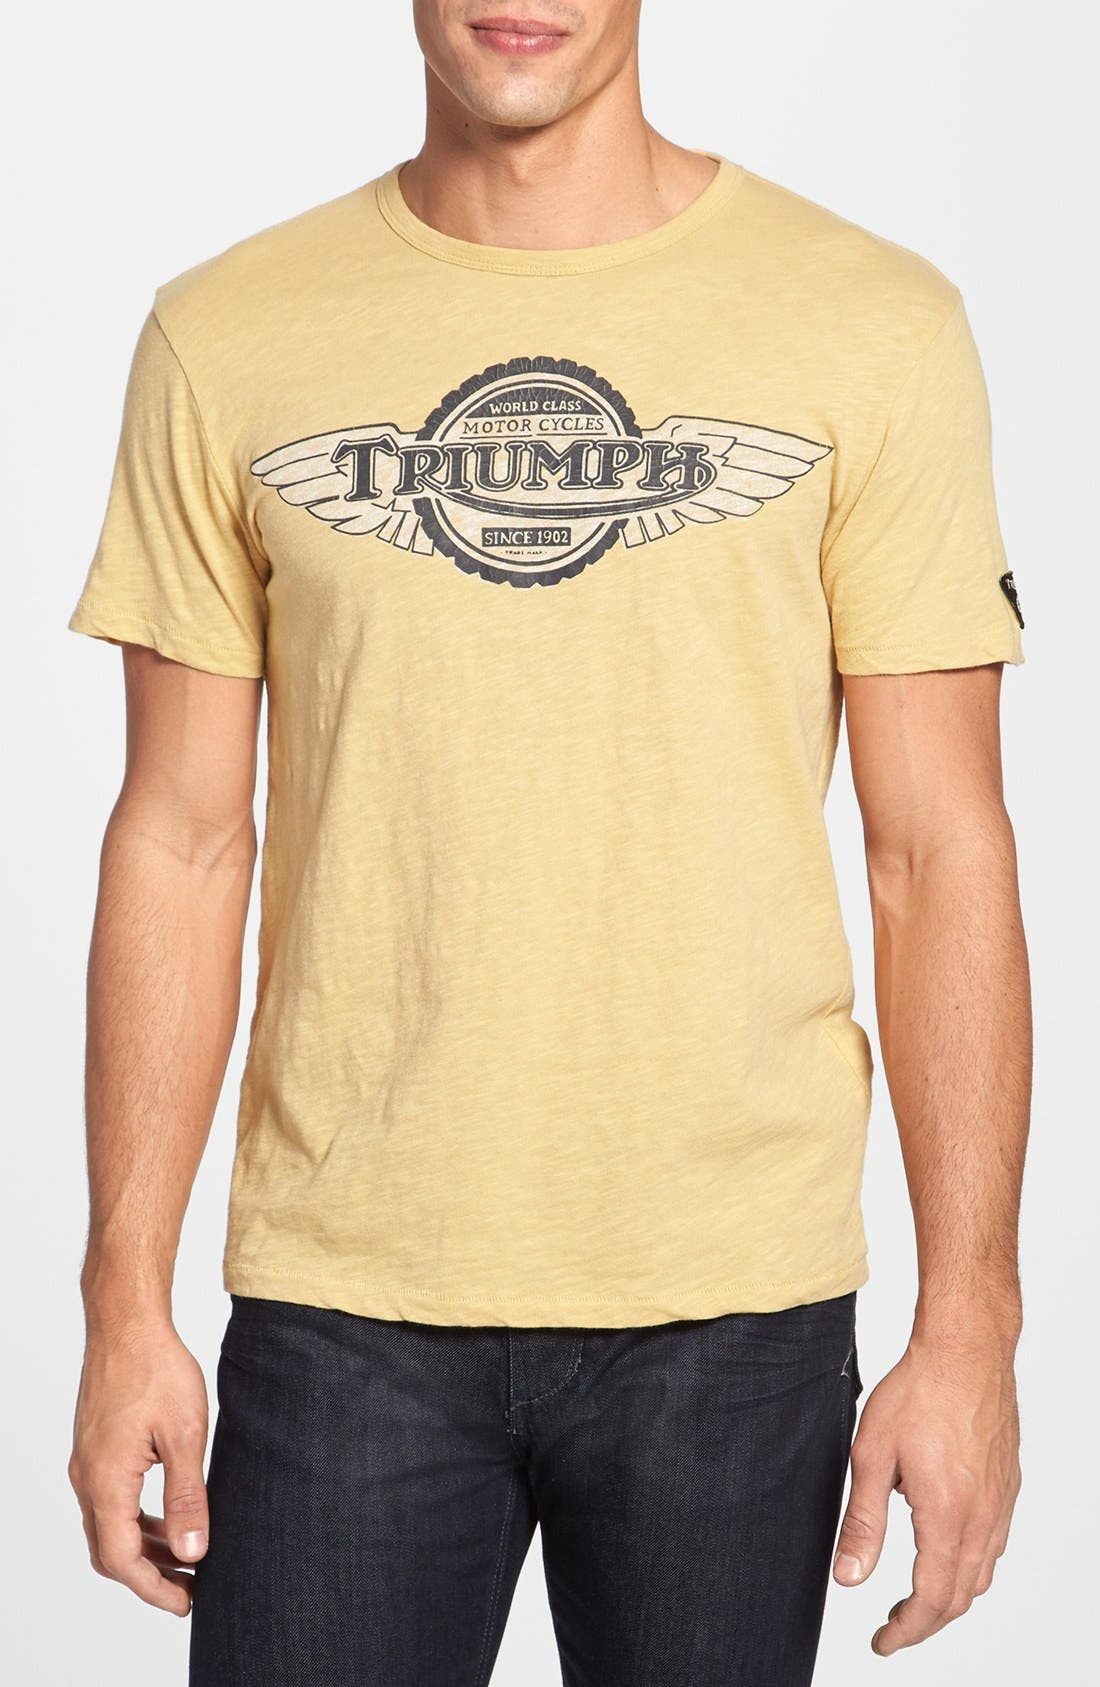 Alternate Image 1 Selected - Lucky Brand 'Triumph™' Graphic Crewneck T-Shirt